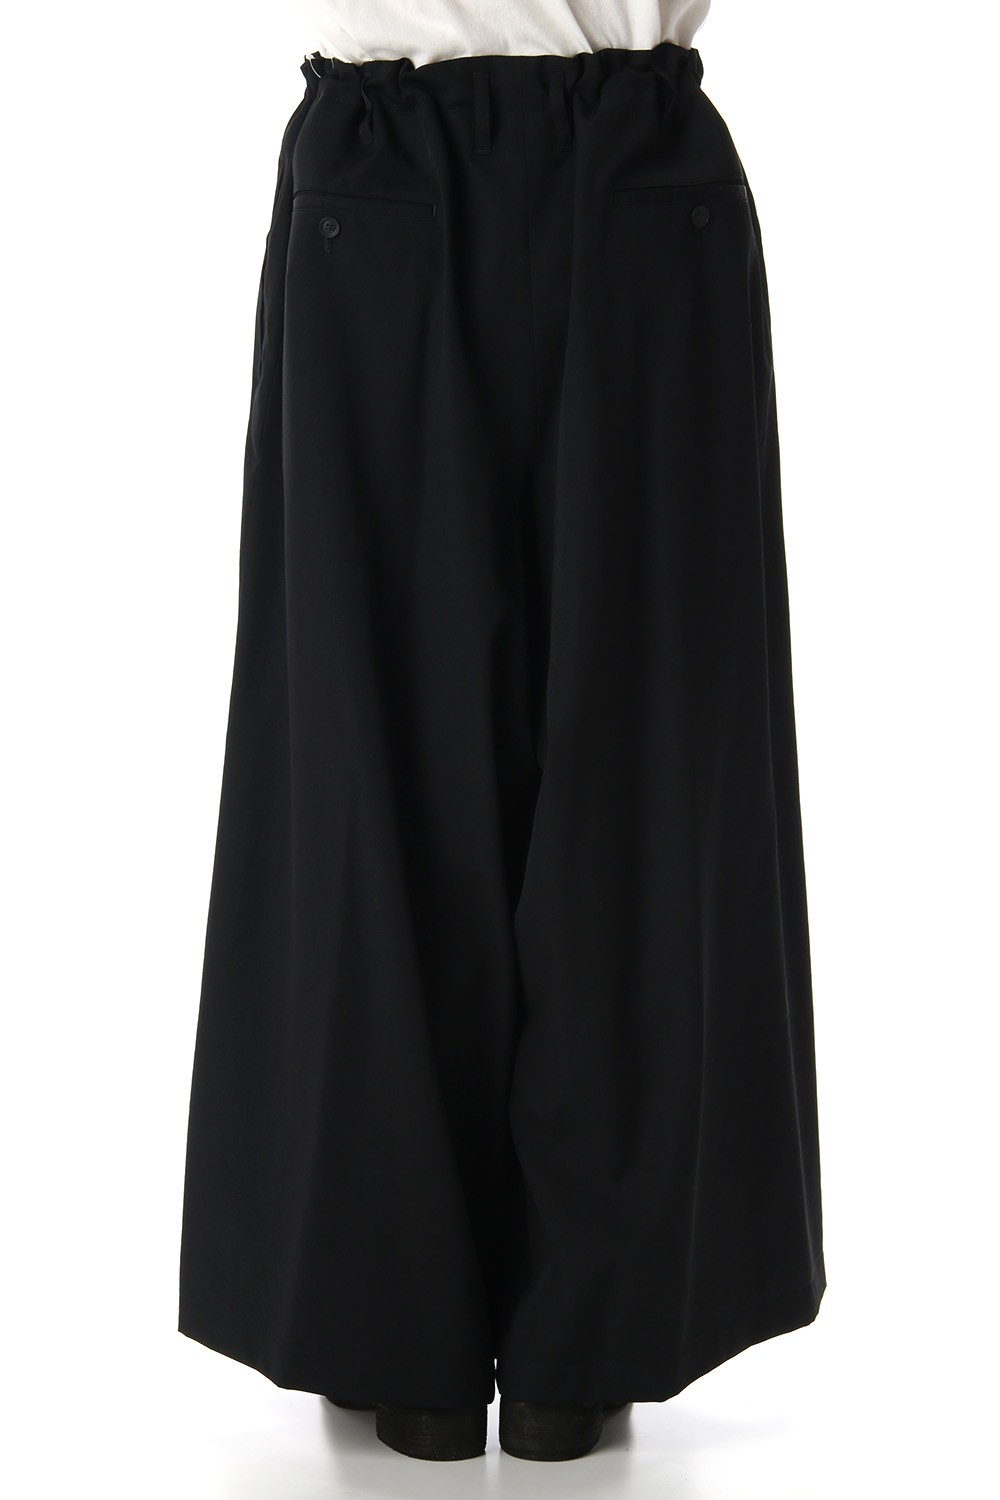 Wool Gabardine Skirt pants